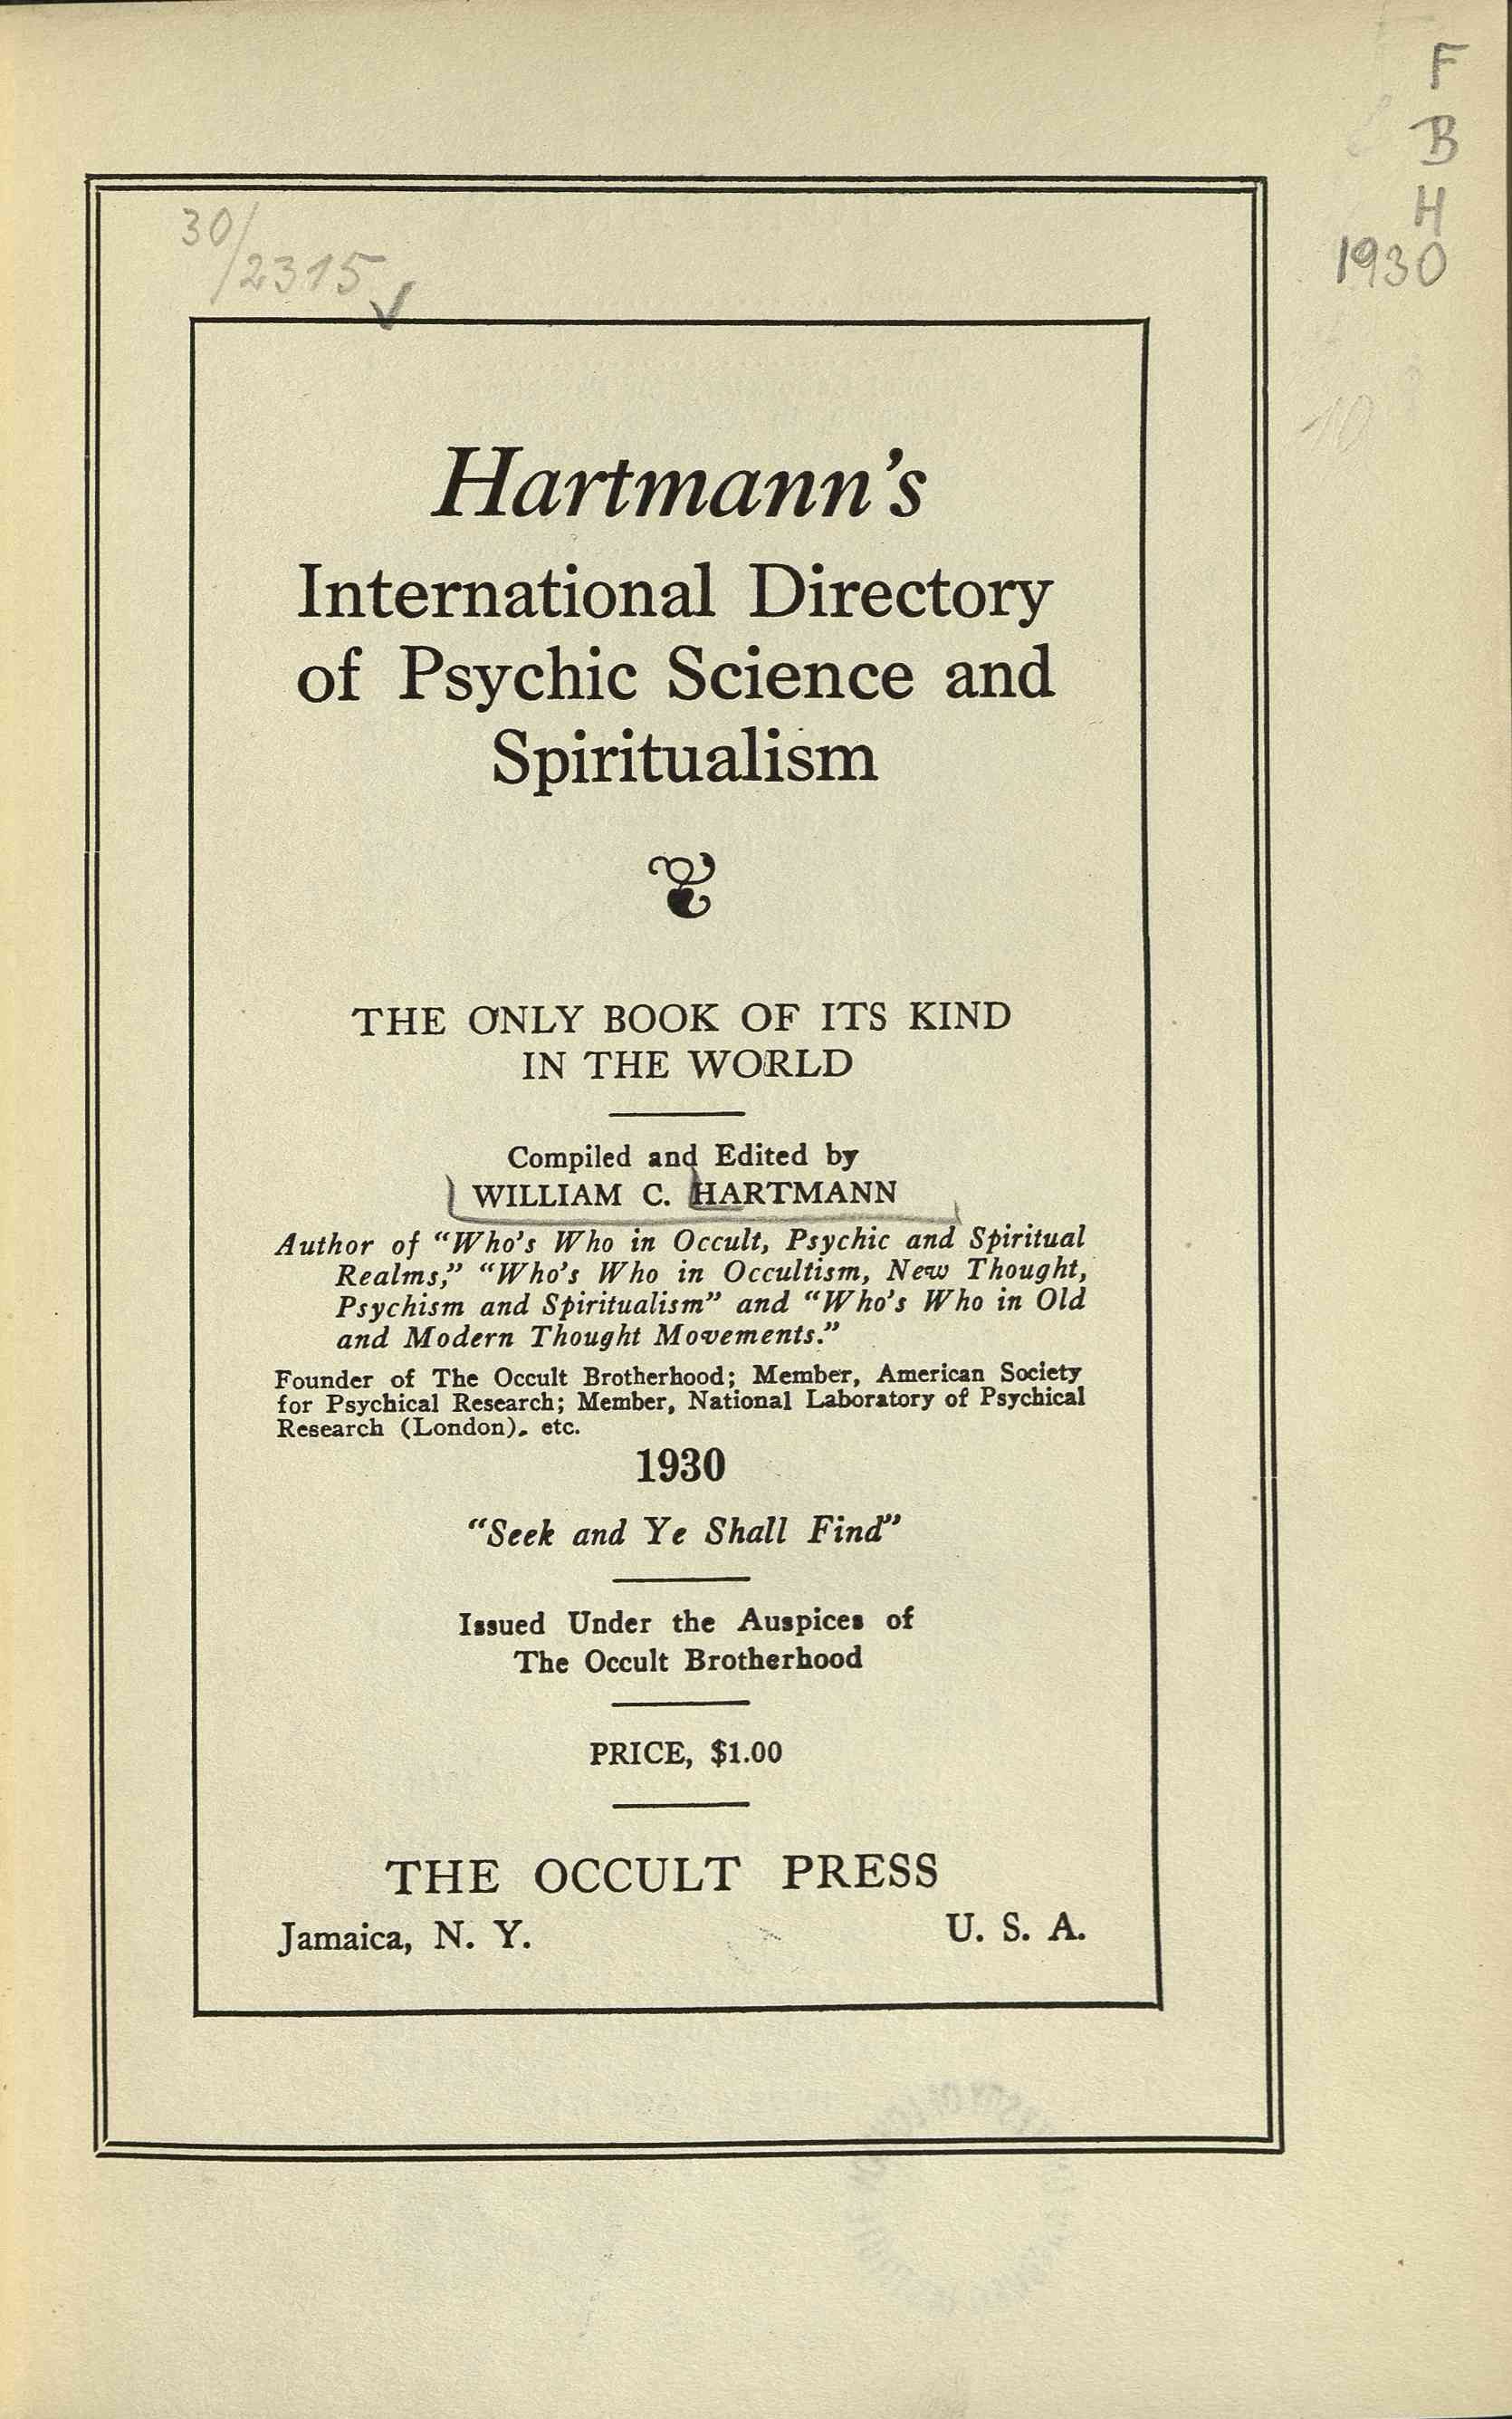 Hartmann's international directory of psychic science and spiritualism